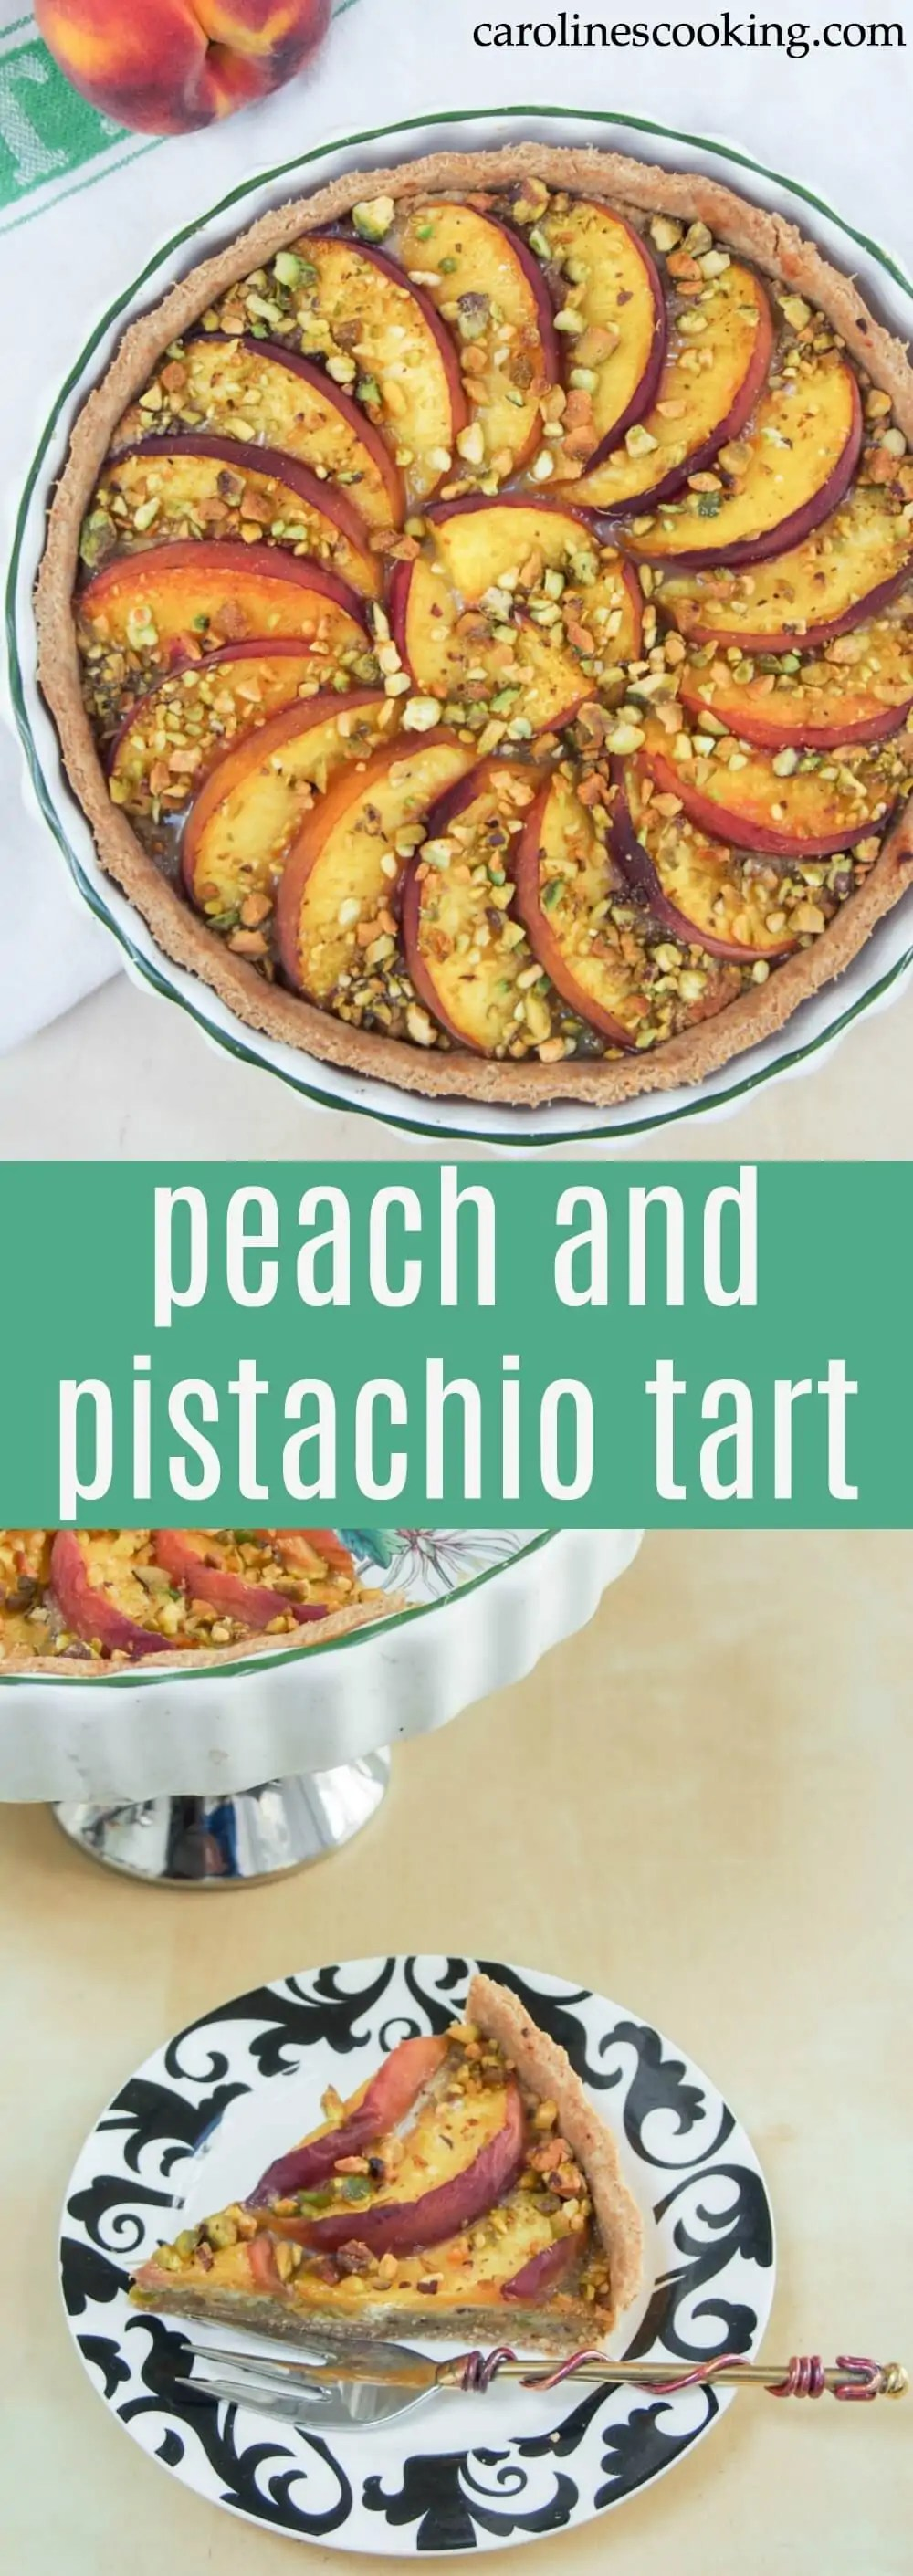 This peach and pistachio tart is a delicious summer dessert combining soft, sweet peach, a pistachio frangipane and a crisp base. And yes, it's as good as it looks.